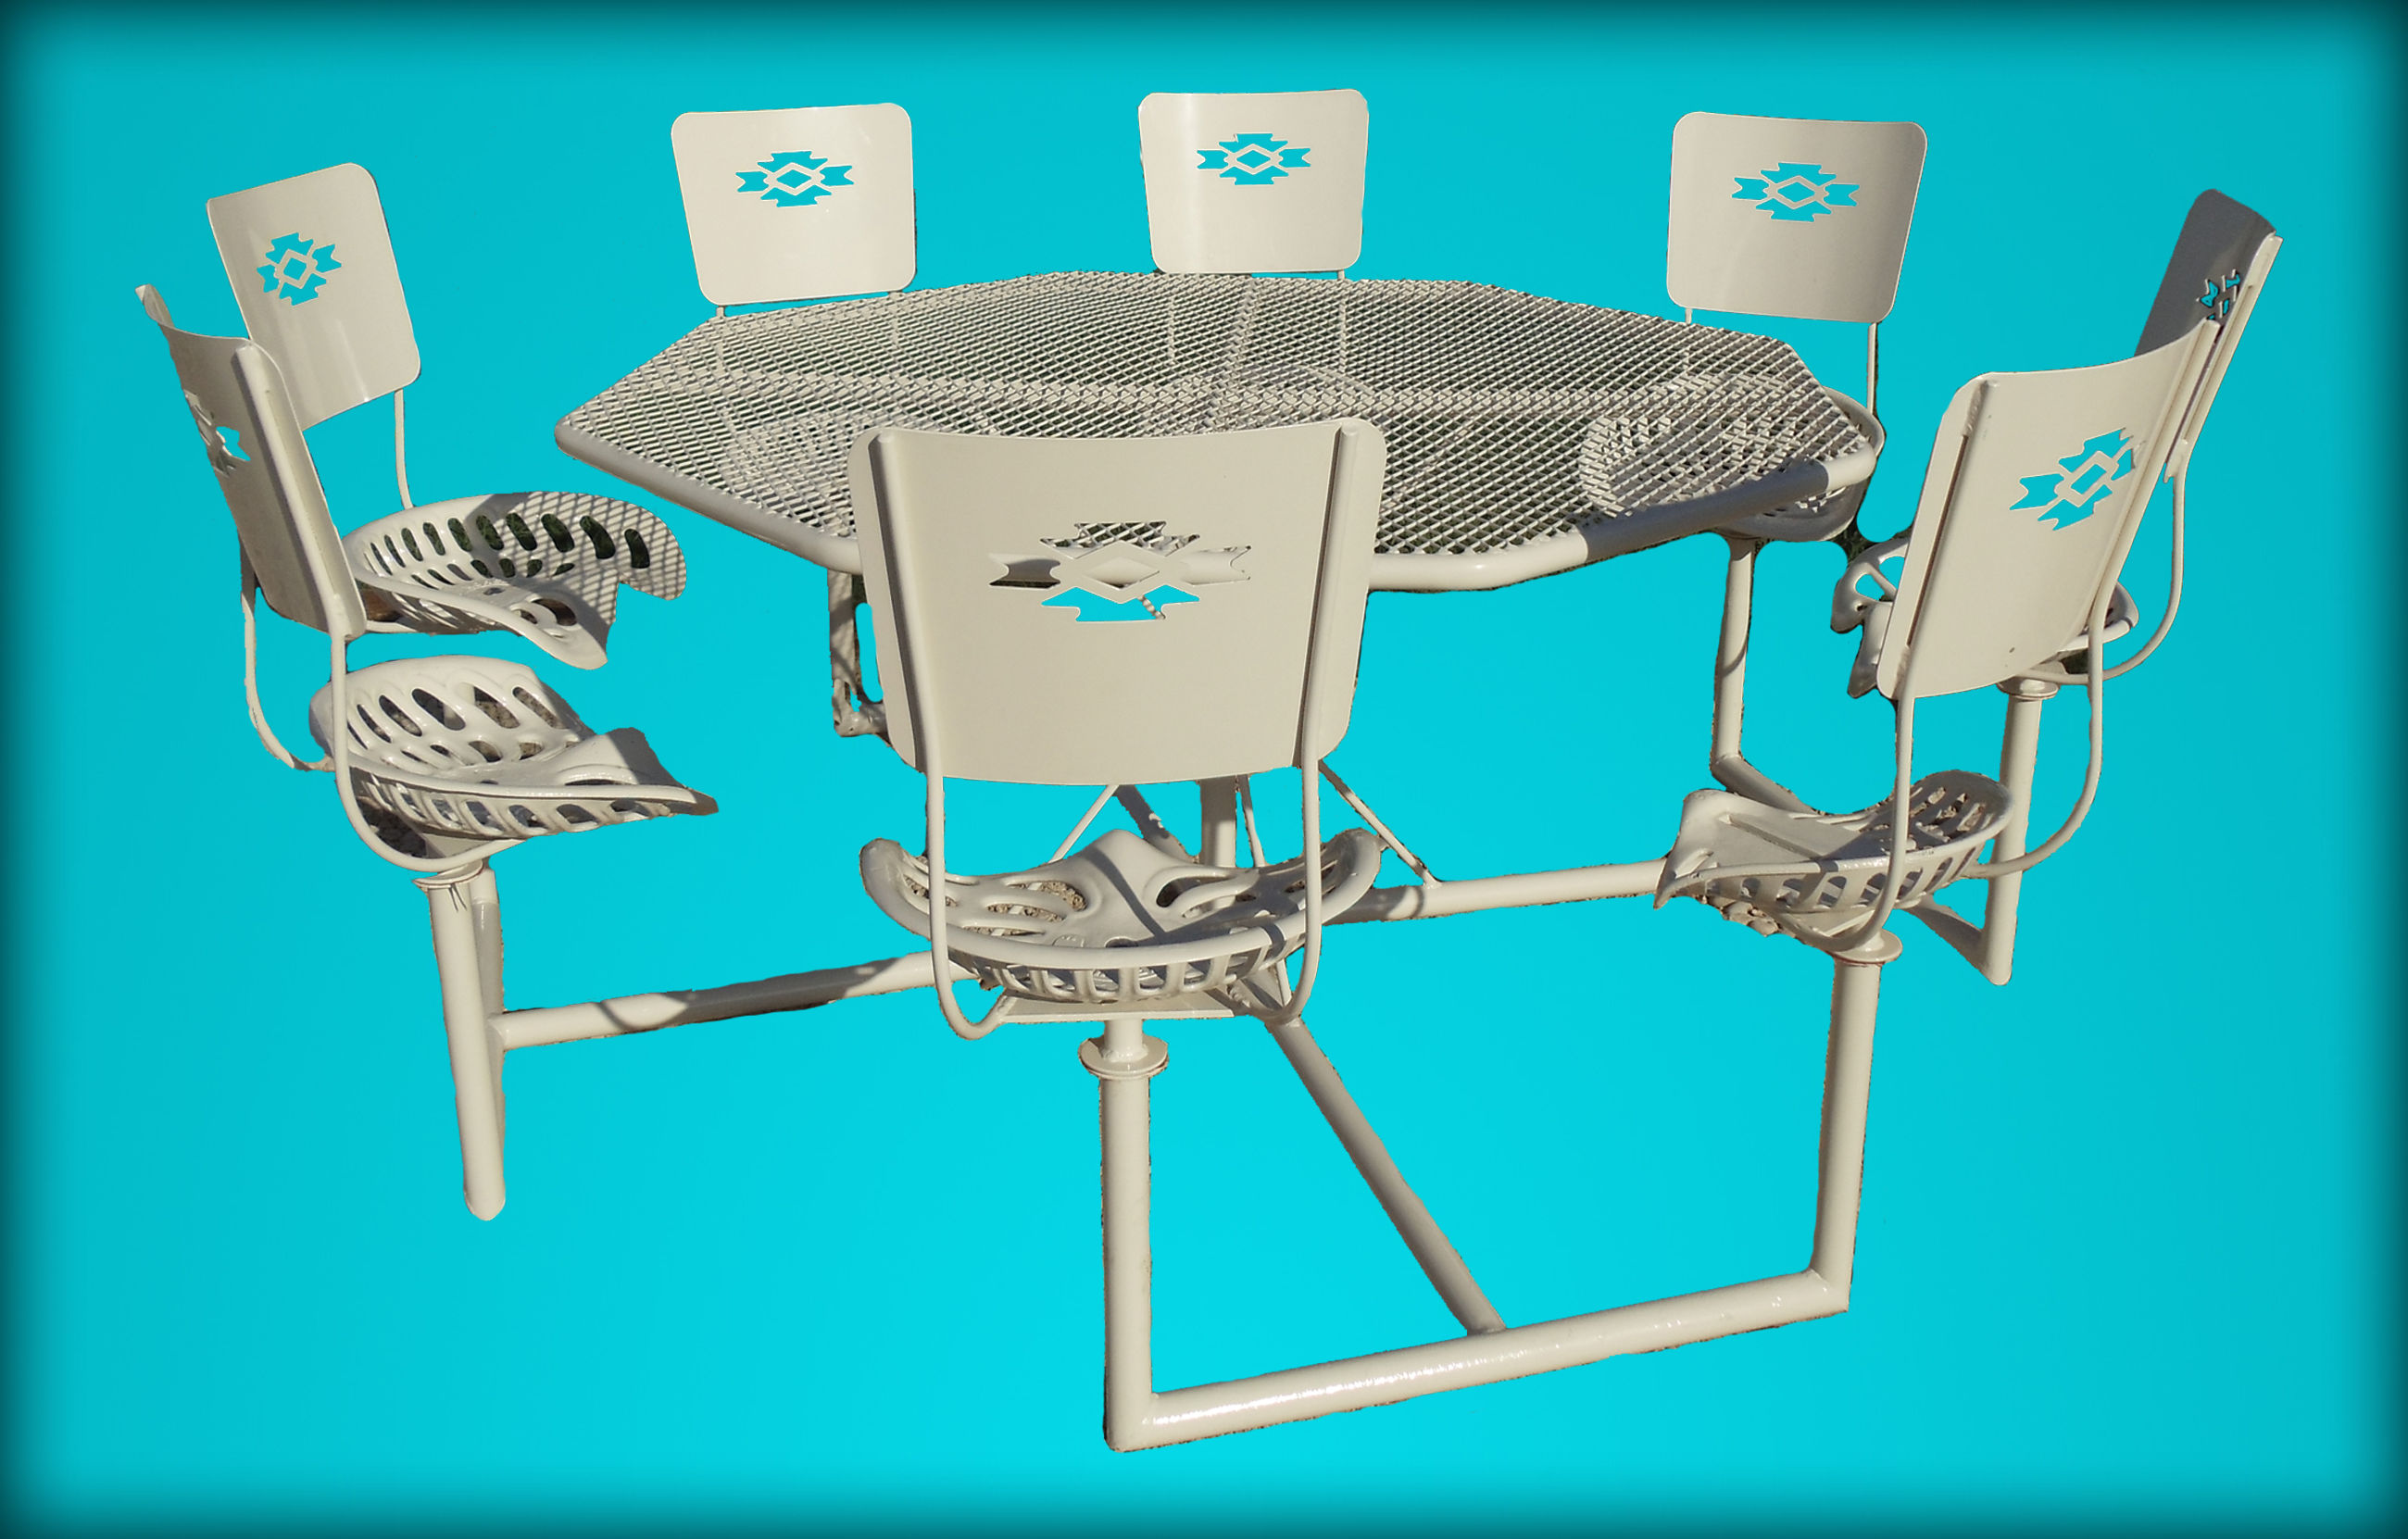 Kickin Back kreations 8-Seat Standard Table